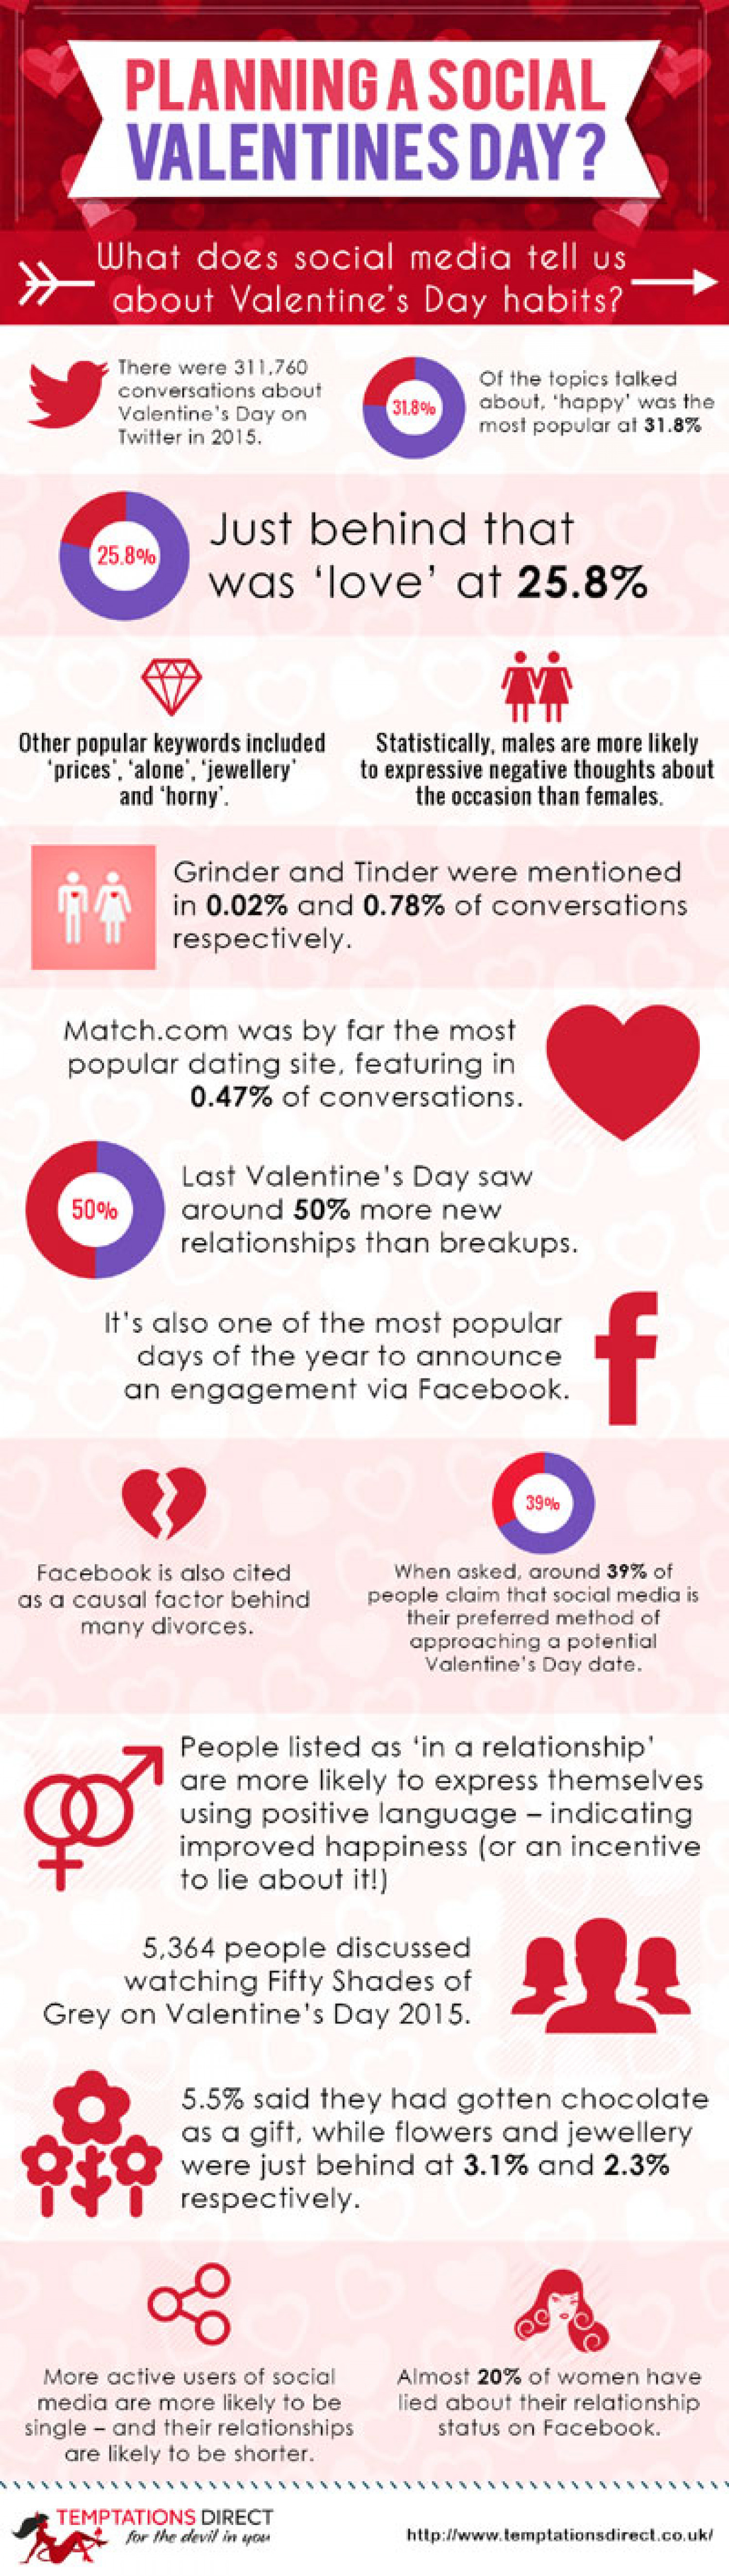 Valentine's Day Traditions Infographic